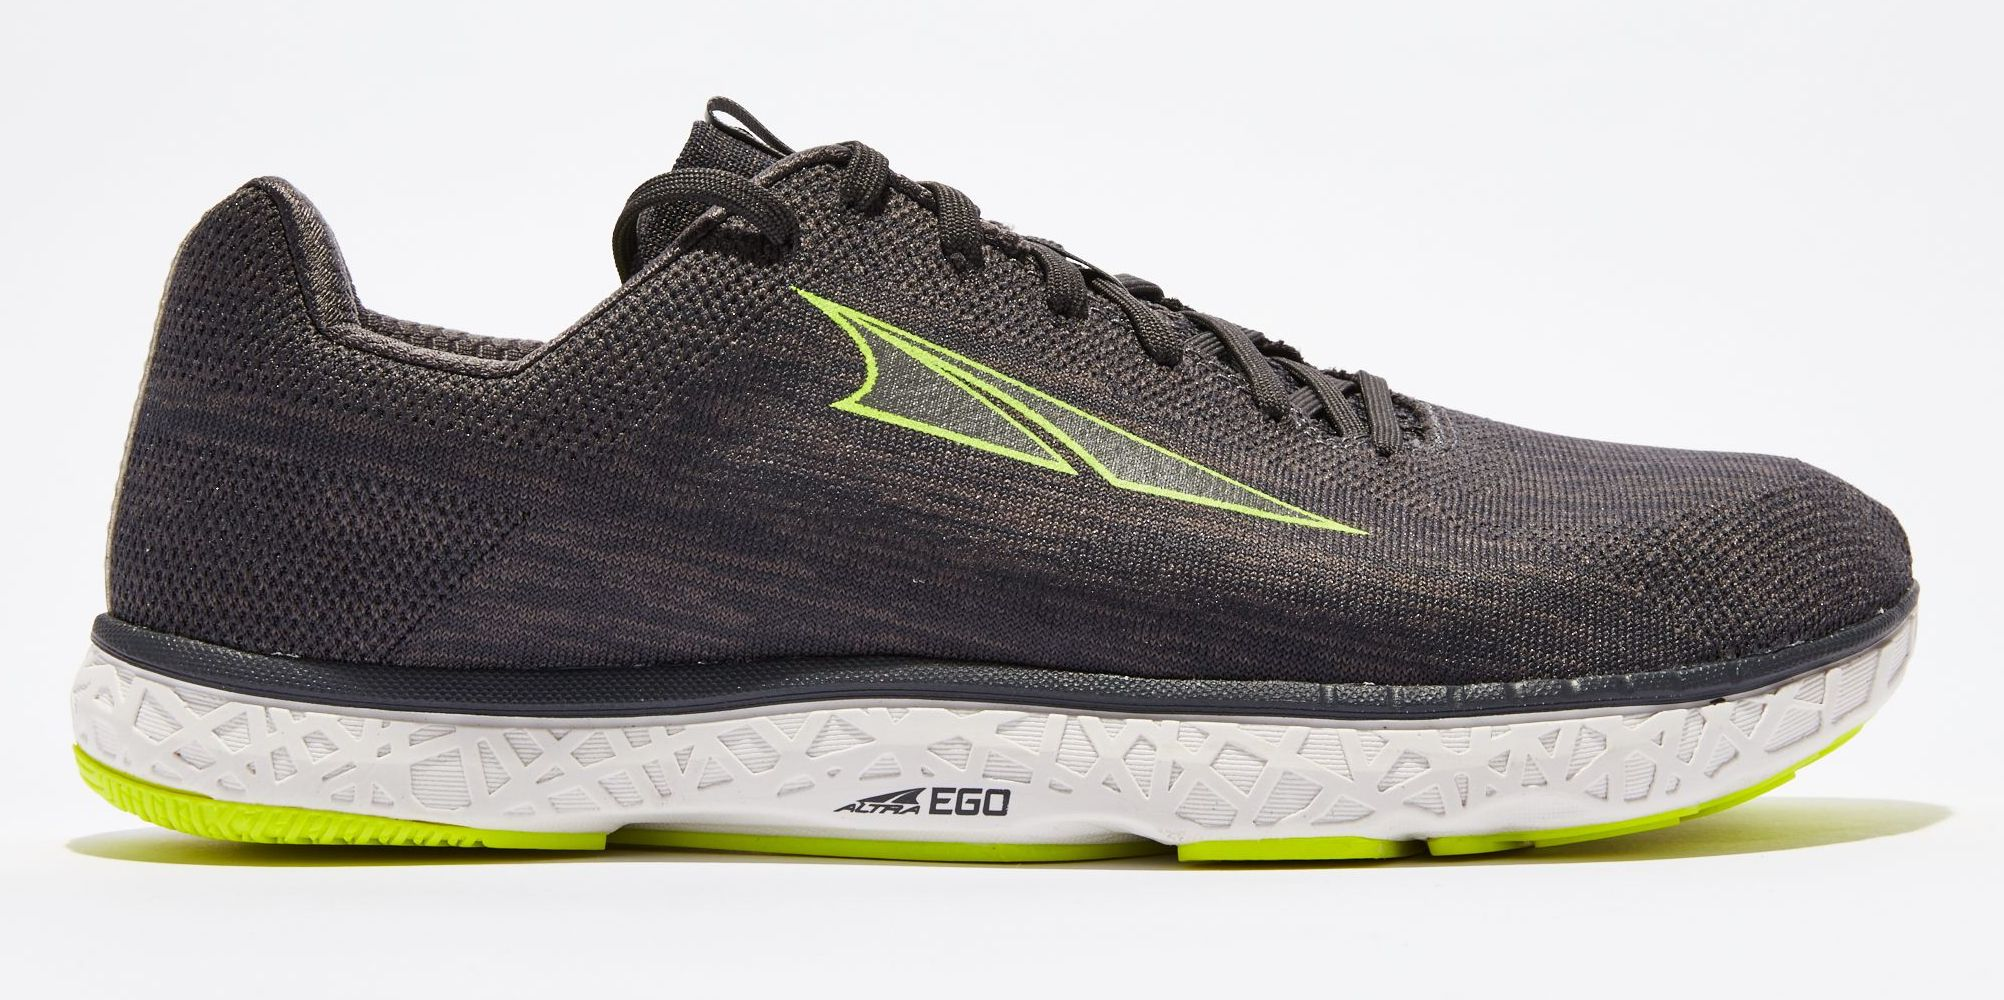 faa025427db Altra Running Shoes